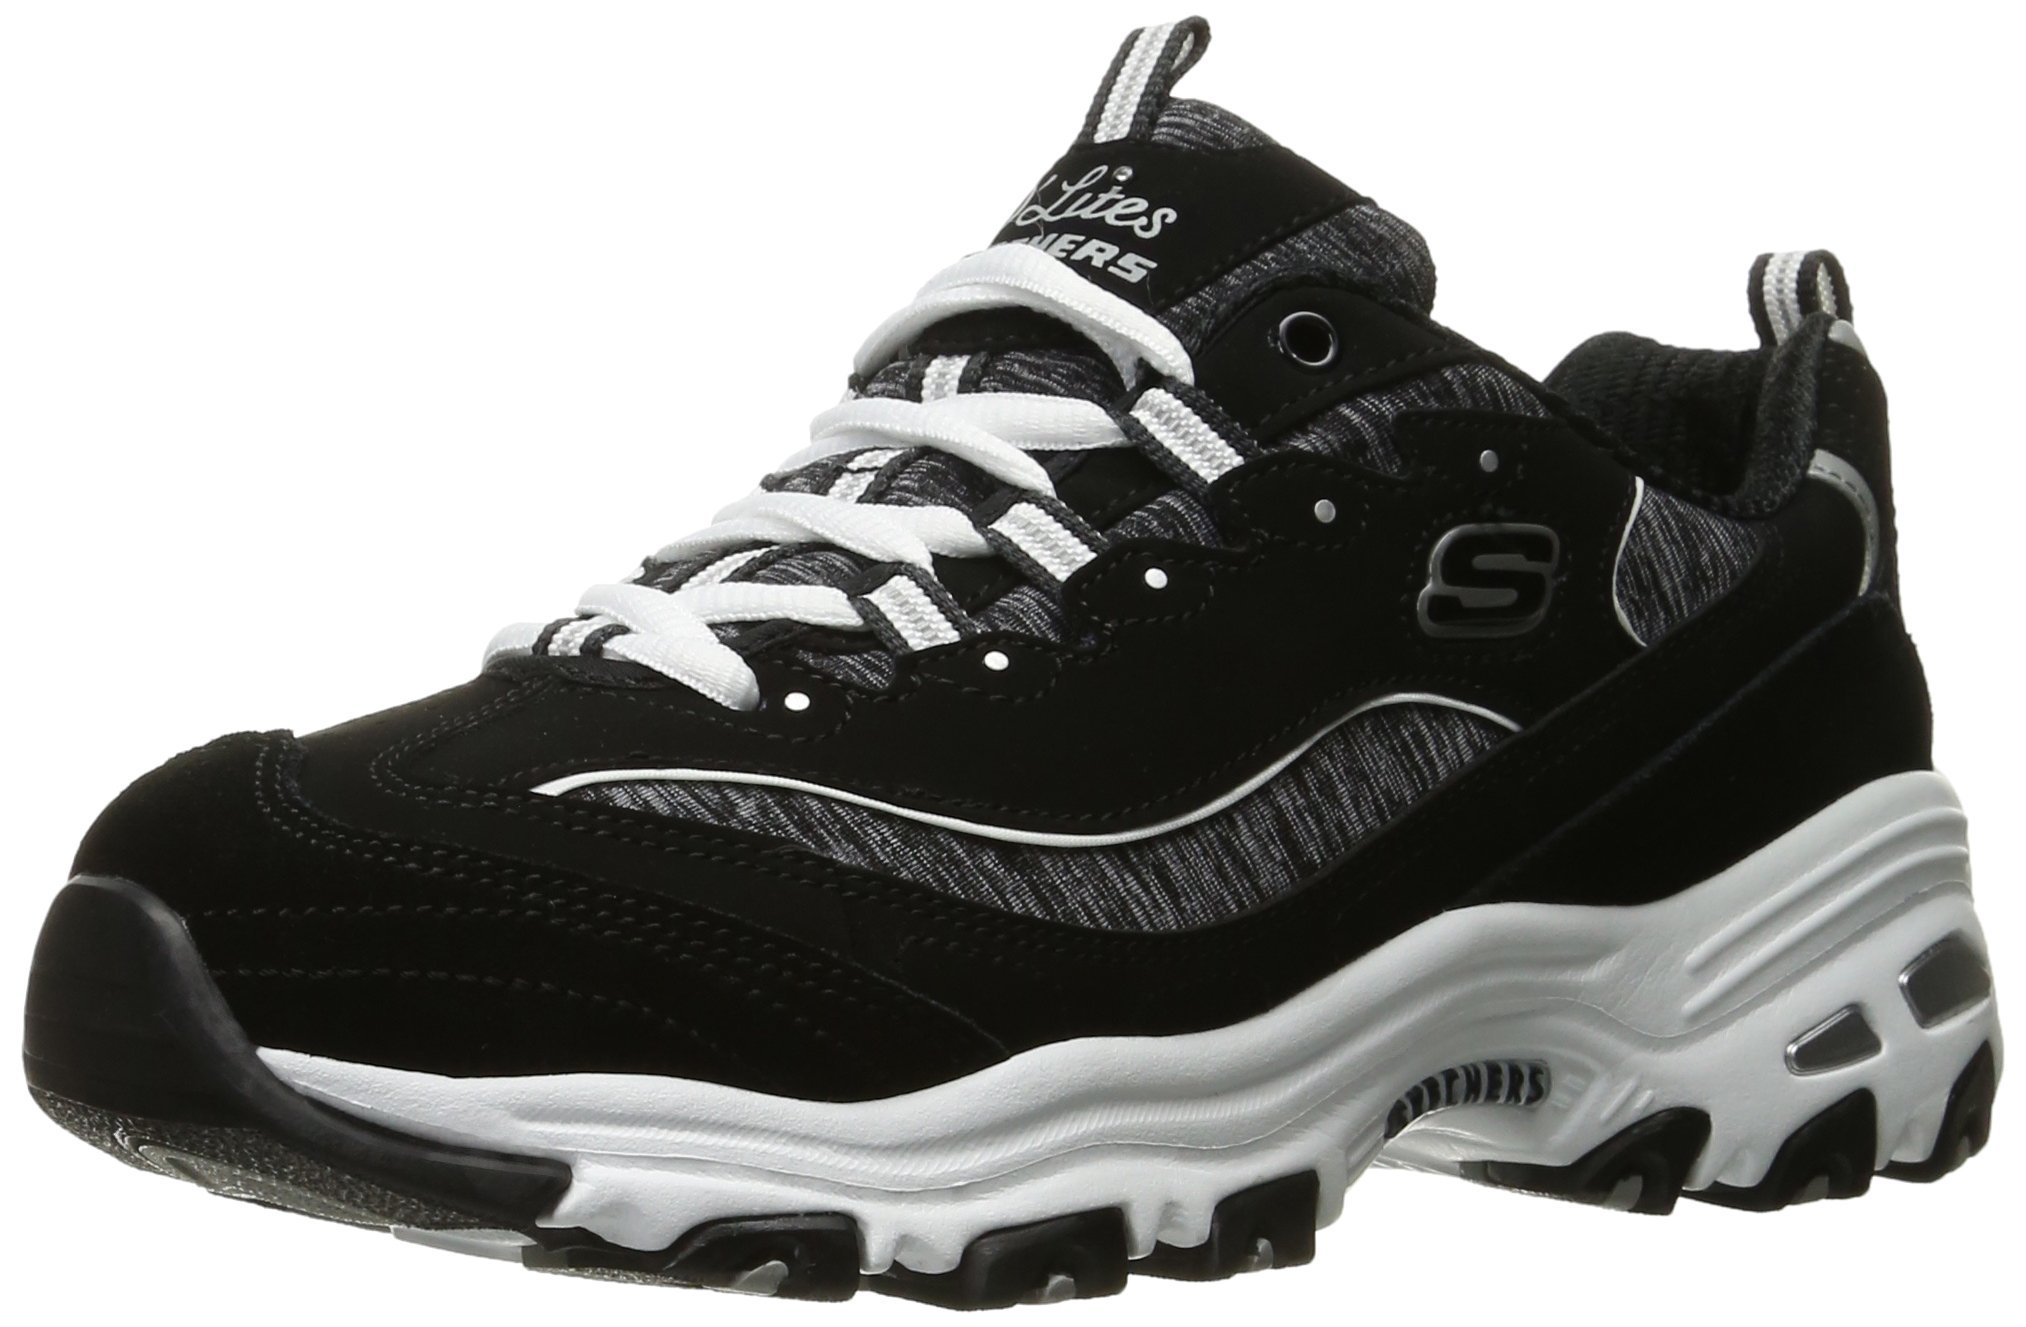 Skechers Sport Women's D'Lites Memory Foam Lace-up Sneaker,Me Time Black/White,9.5 W US